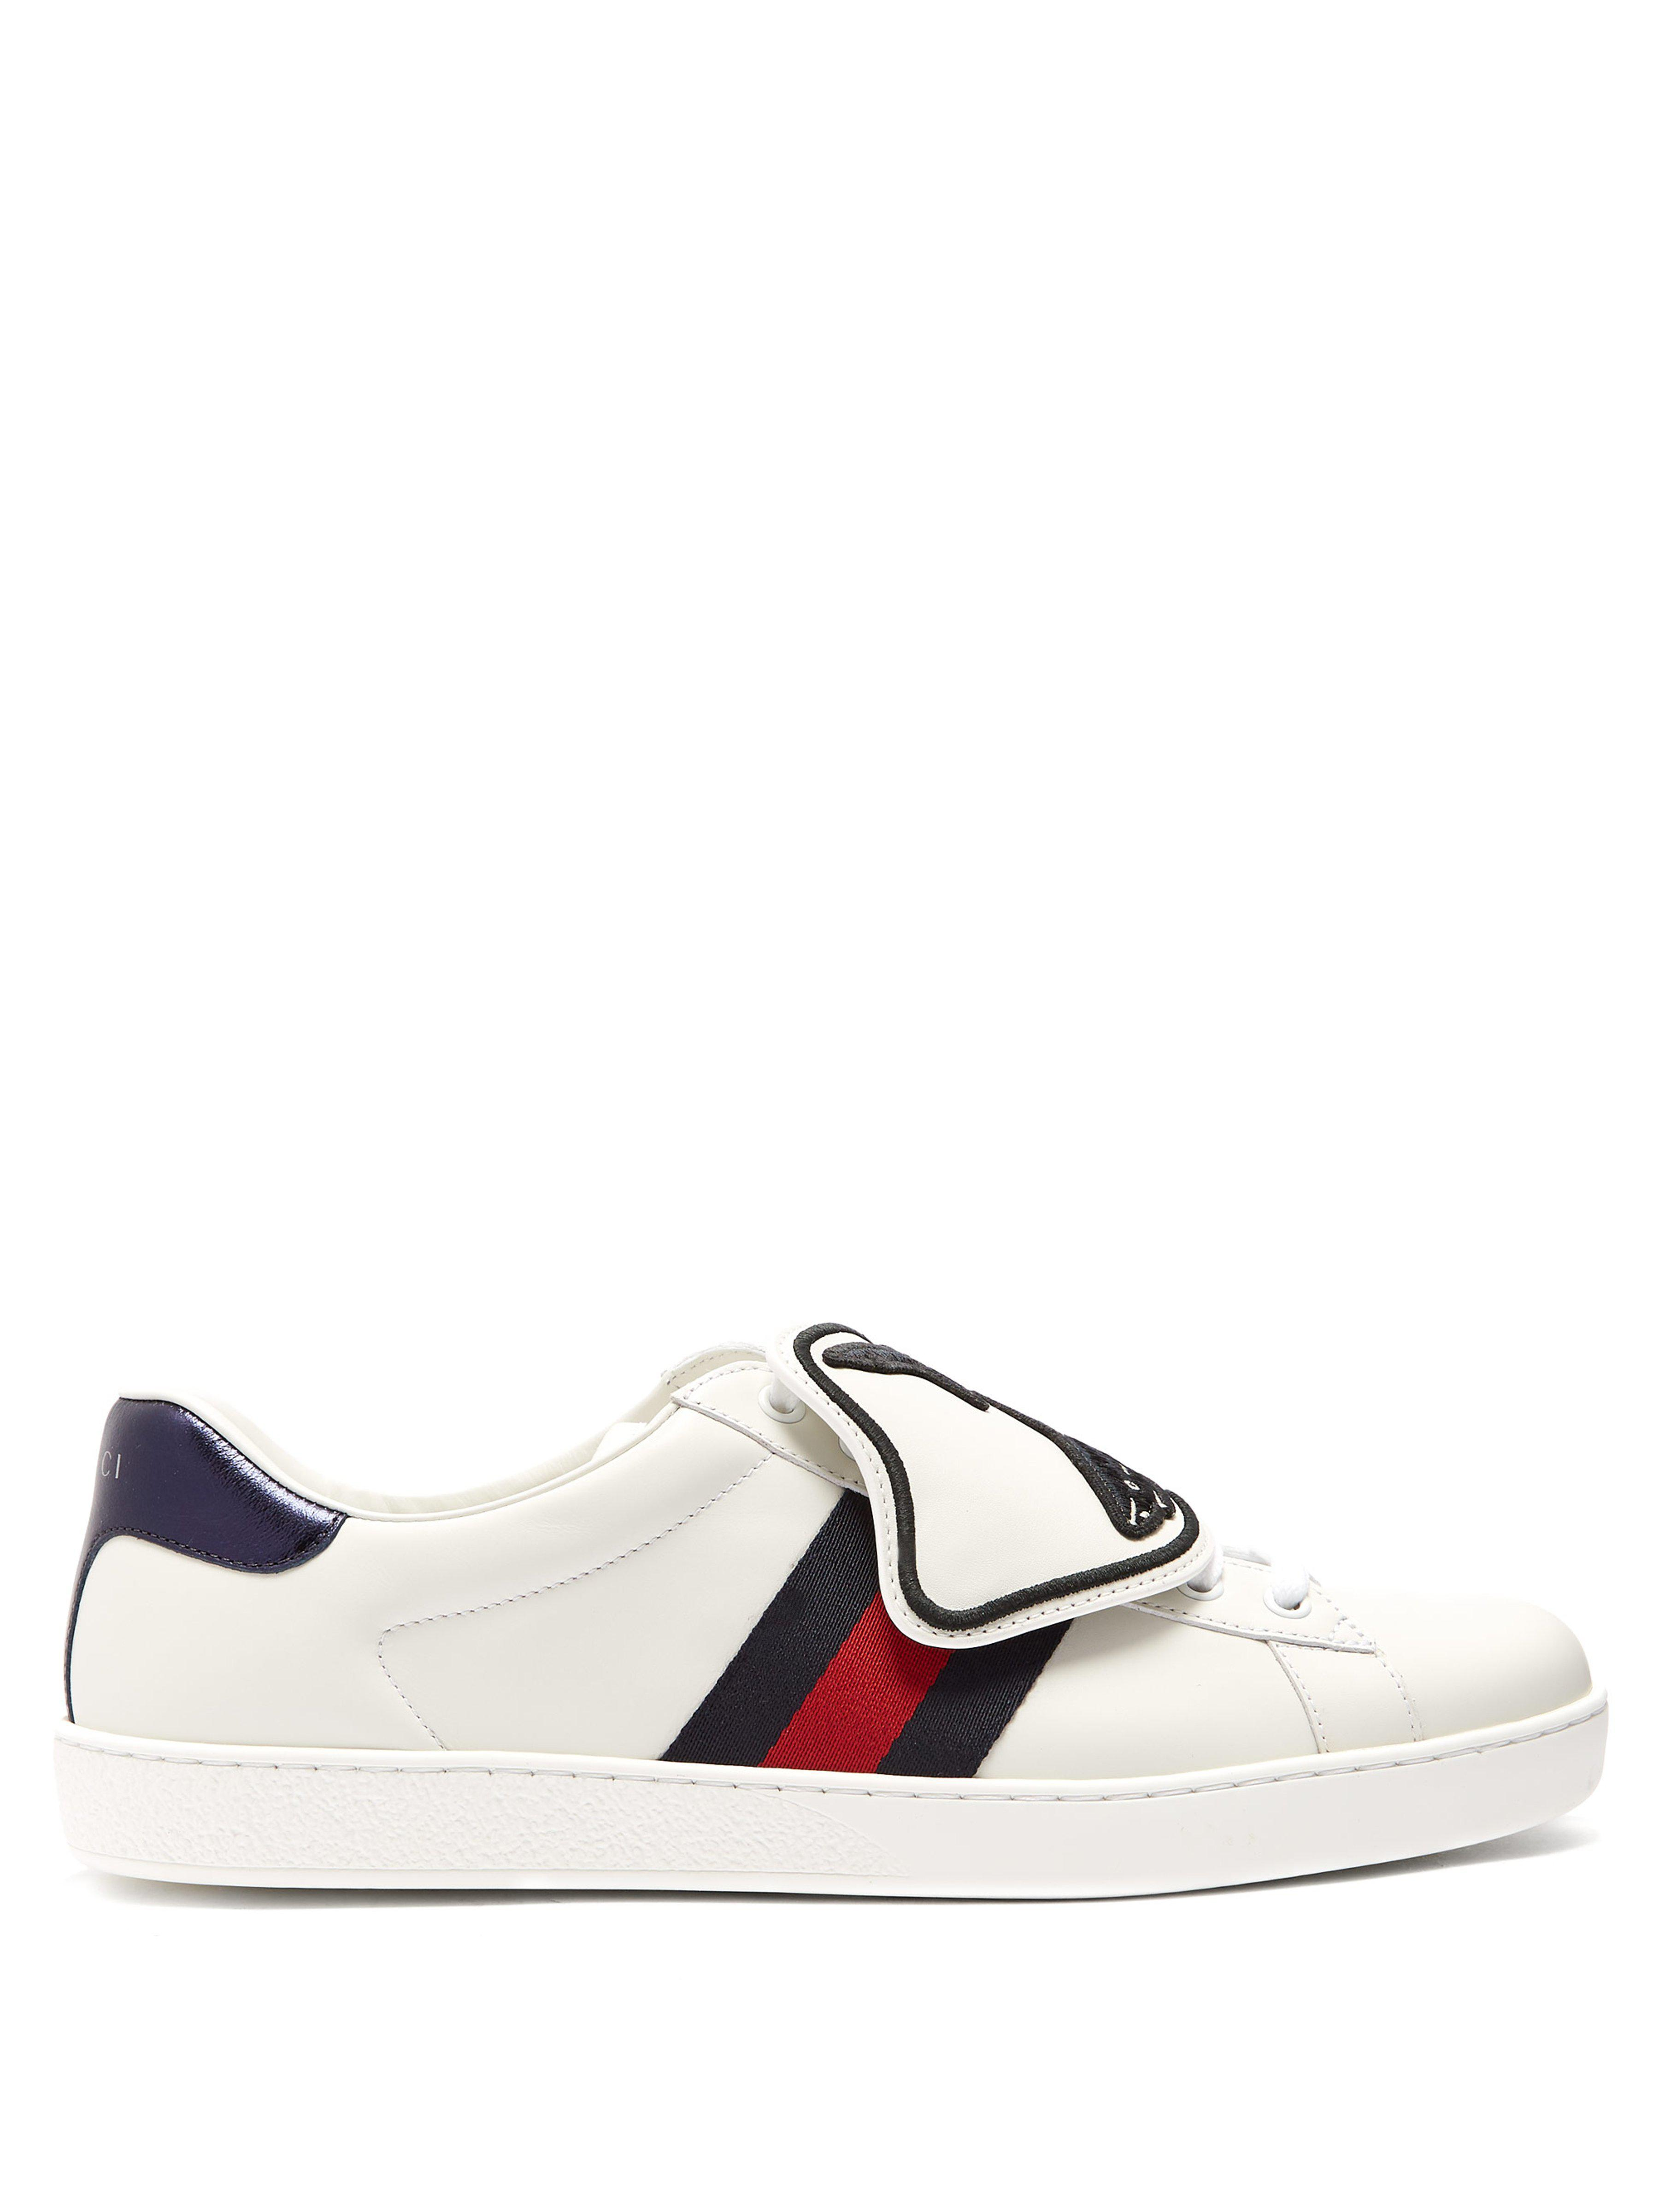 432a3f670d1 Gucci Ace Low Top Leather Trainers in White for Men - Lyst